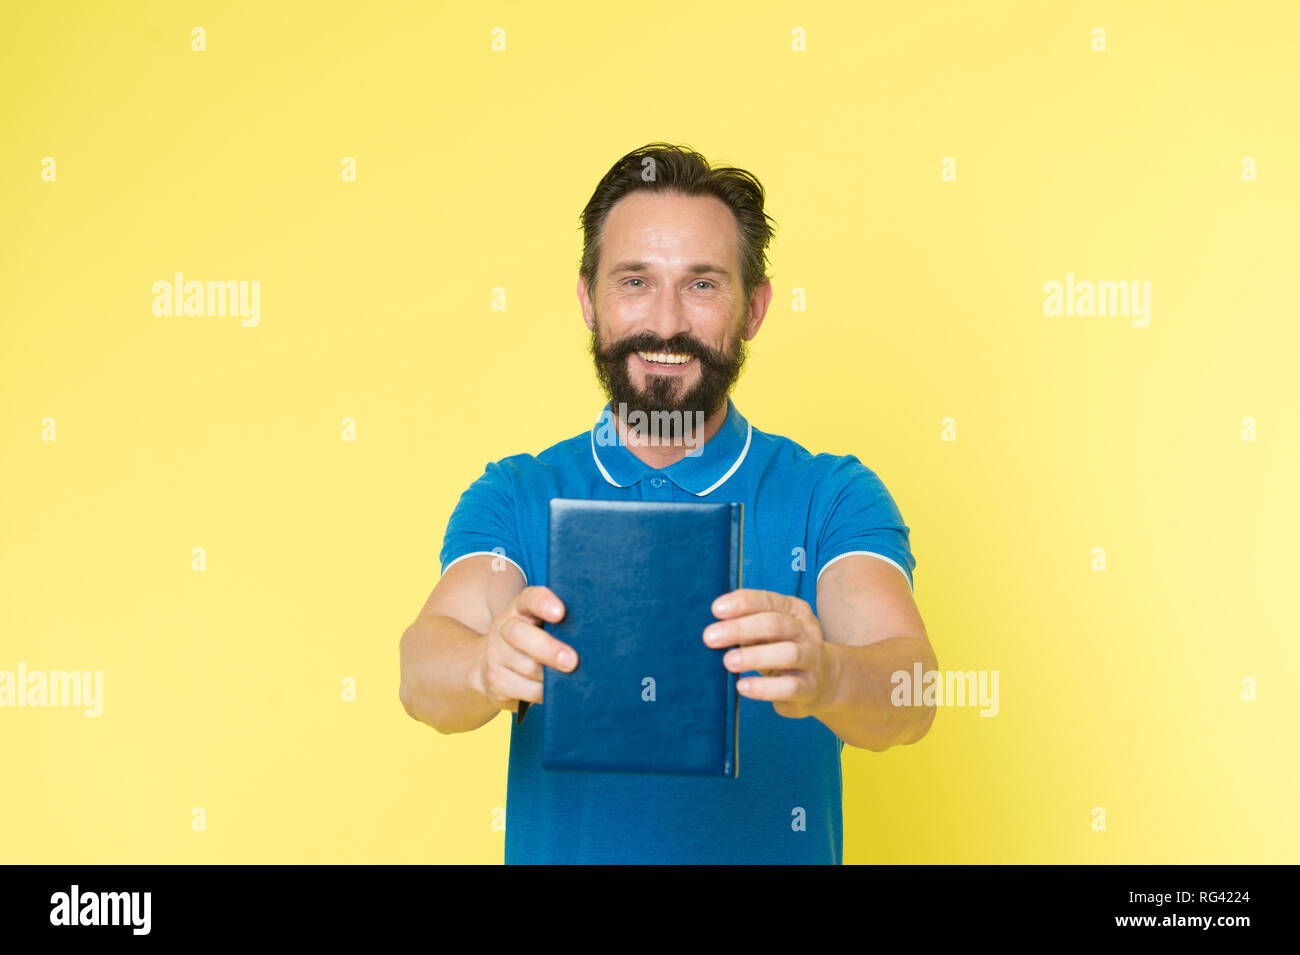 Literary critic. Man mature bearded guy hold book. Satisfied reader. Book presentation concept. Author presenting book copy space. Bestseller and book store. Literature taste and recommendations. - Stock Image